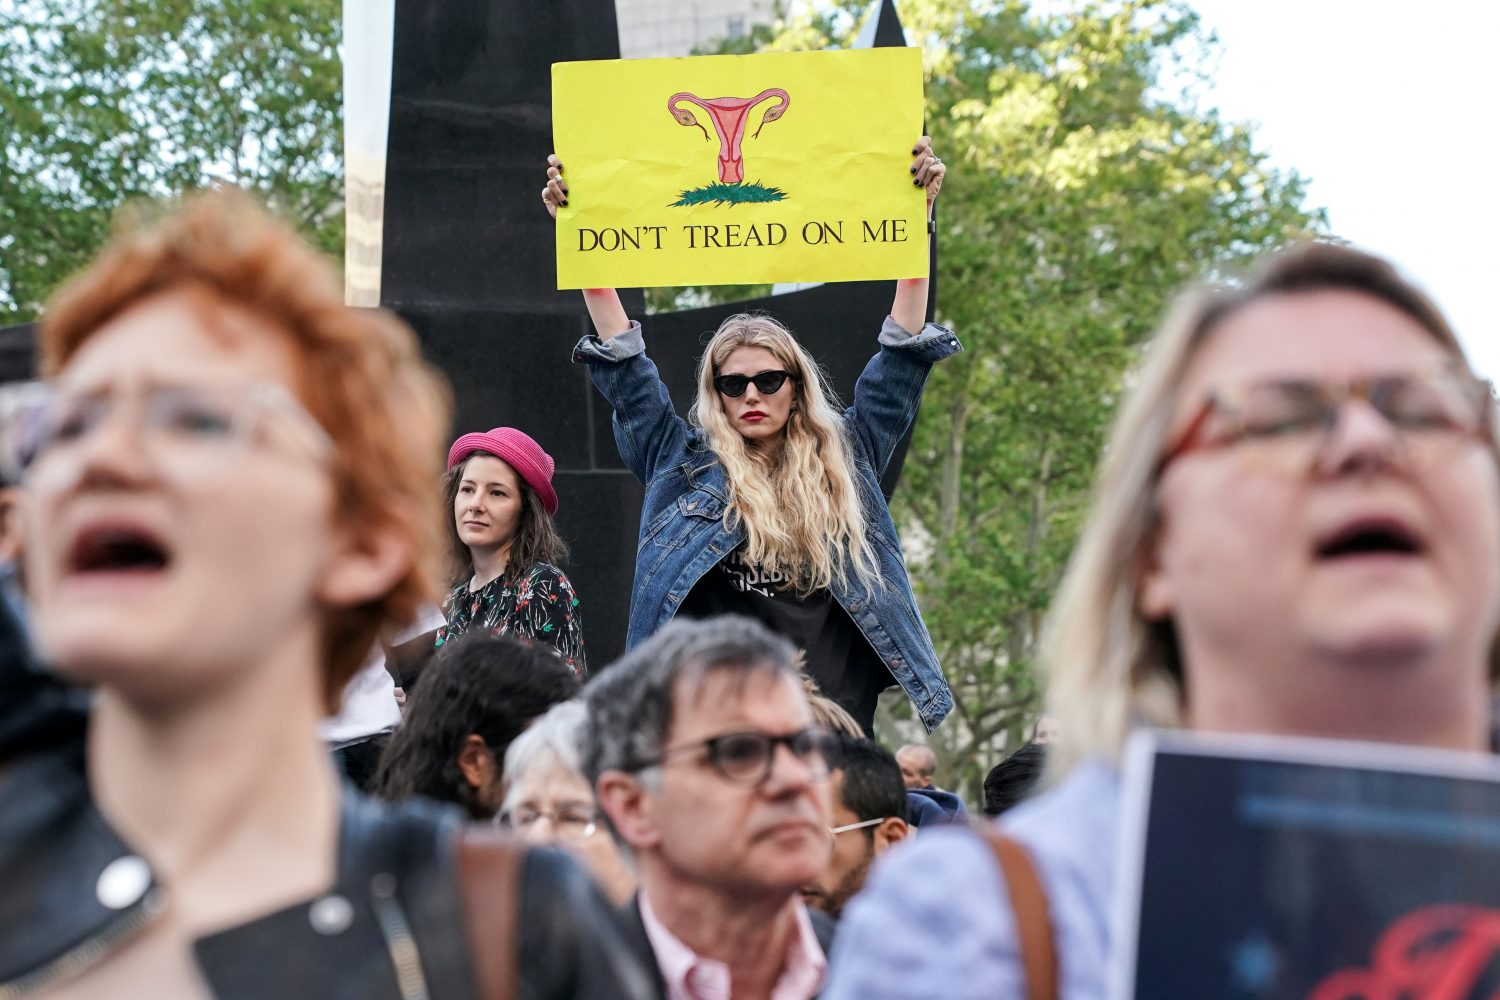 FILE PHOTO: Abortion-rights campaigners attend a rally against new restrictions on abortion passed by legislatures in eight states including Alabama and Georgia, in New York City, U.S., May 21, 2019. REUTERS/Jeenah Moon